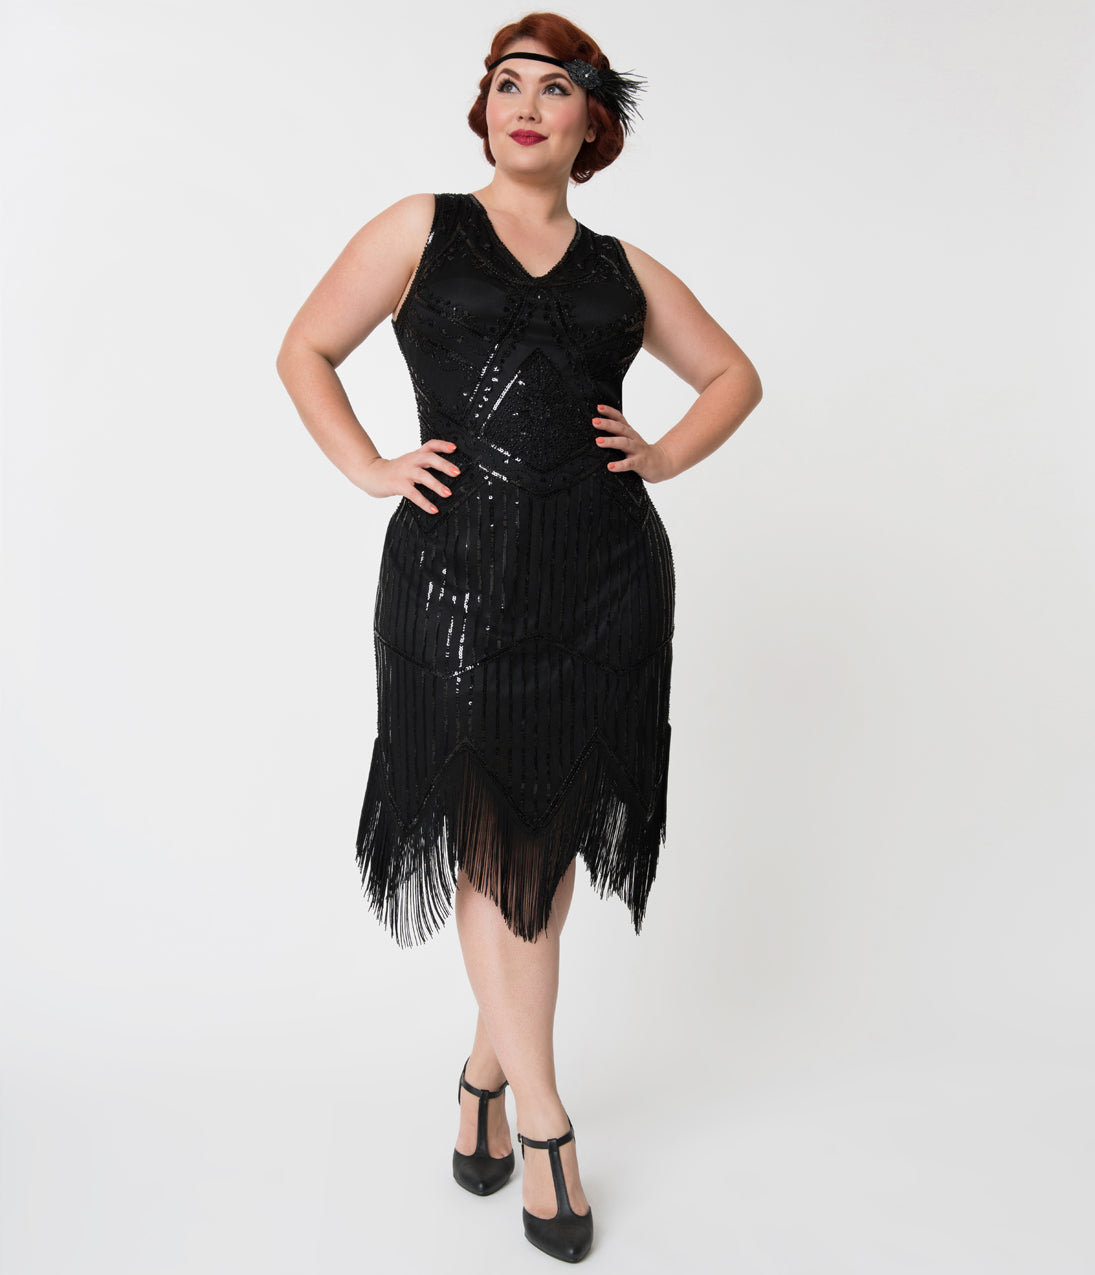 Vintage New Years Eve Dresses – Vintage Inspired Styles Unique Vintage Plus Size 1920S Black Beaded Sequin Juliette Fringe Flapper Dress $68.00 AT vintagedancer.com